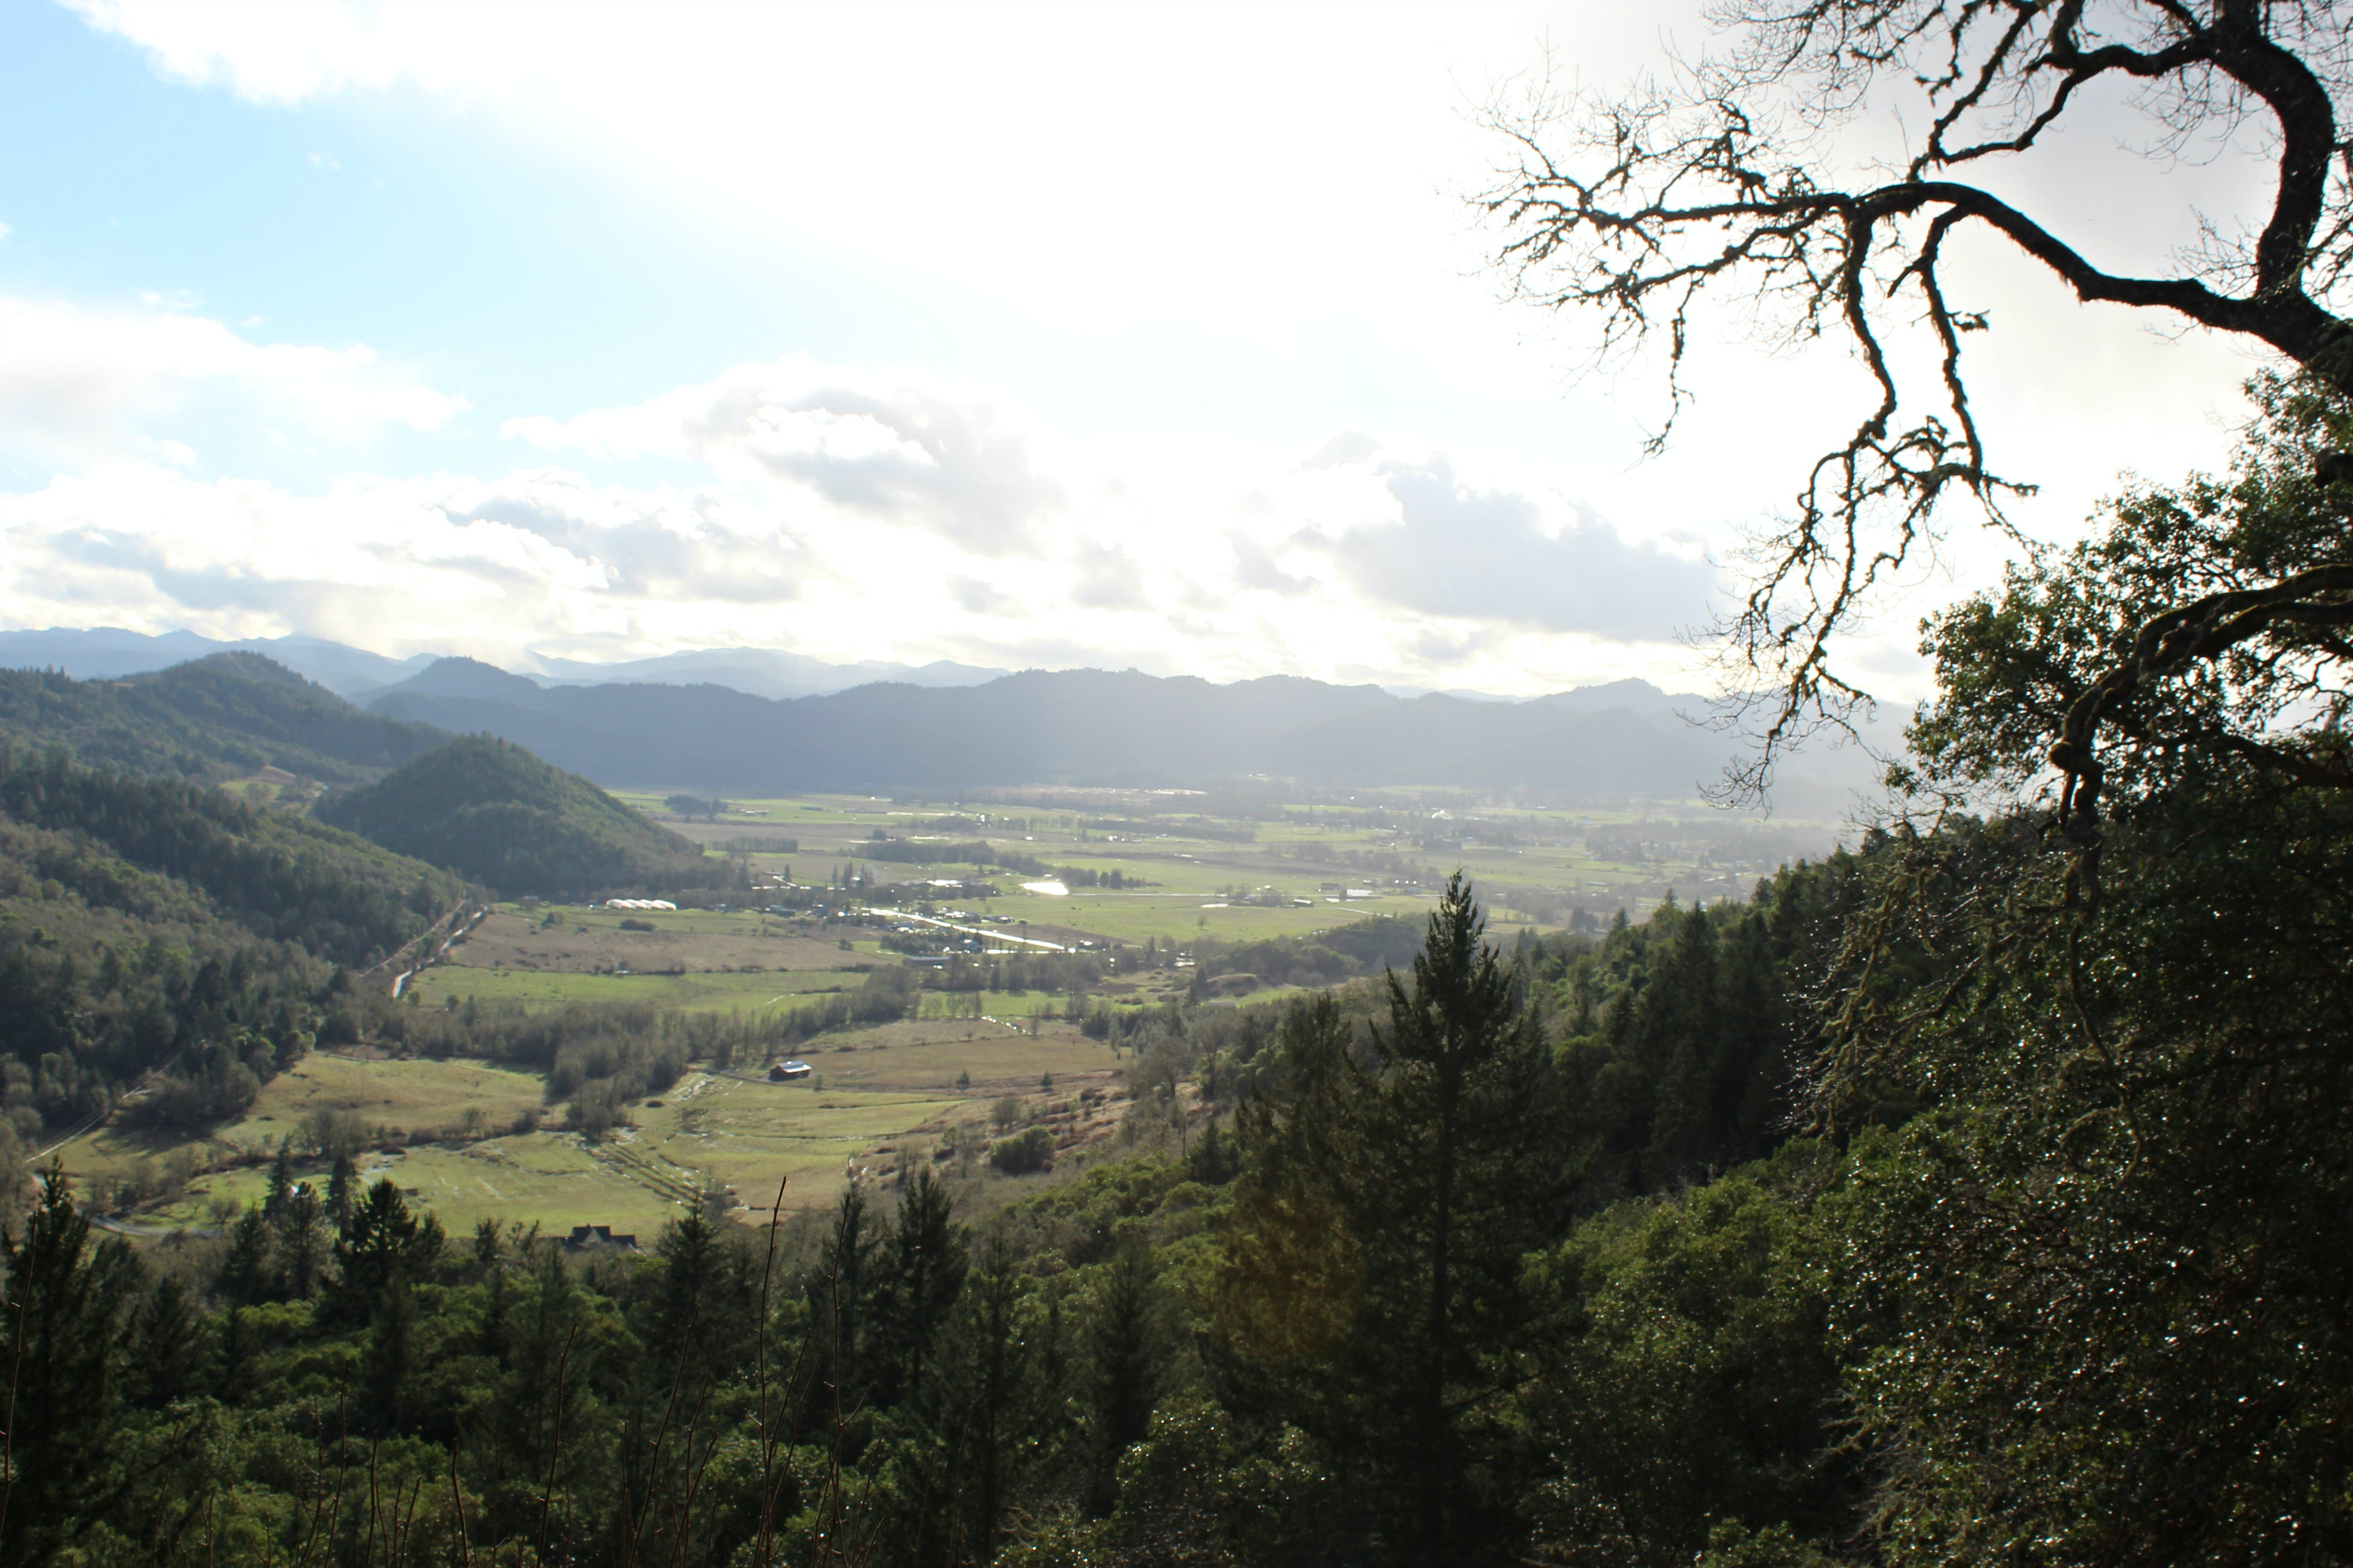 Free stock photo of oregon, valely, valley view, roseburg